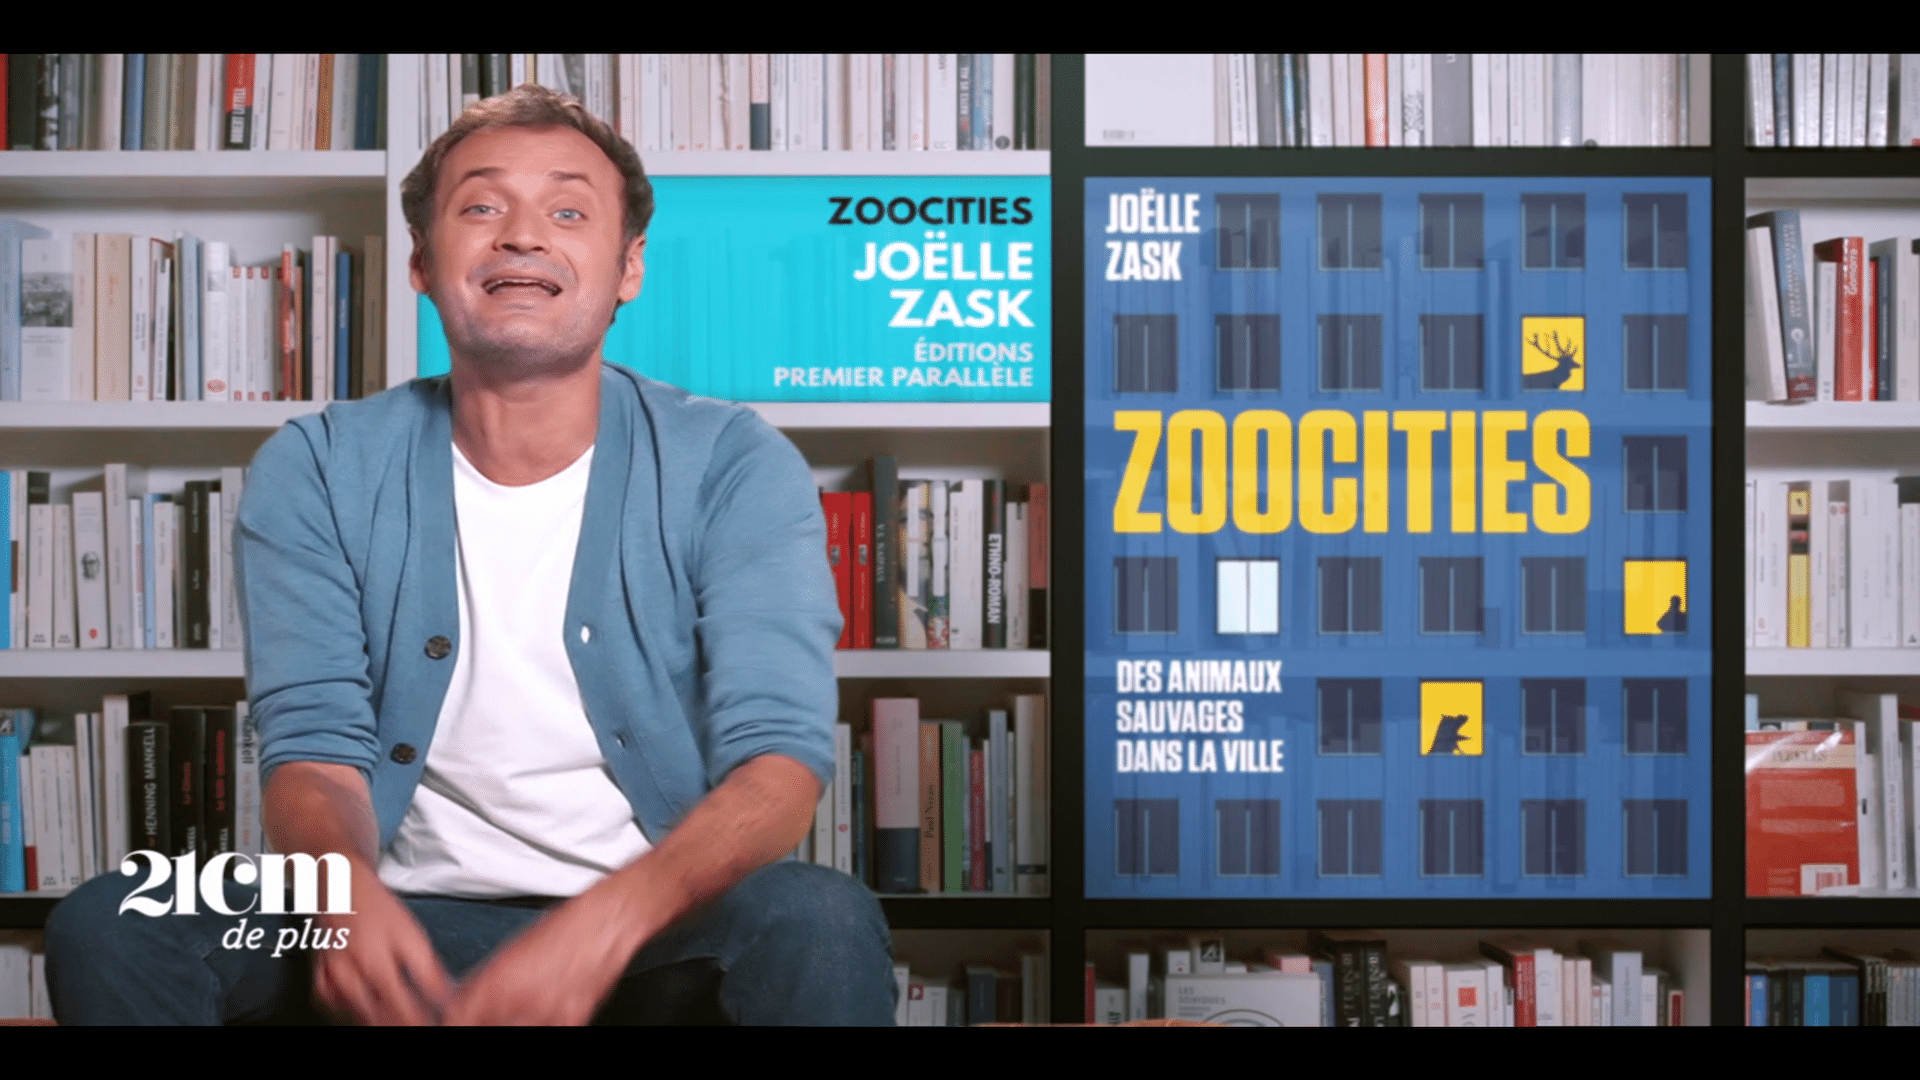 """Zoocities"" - Joëlle Zask"